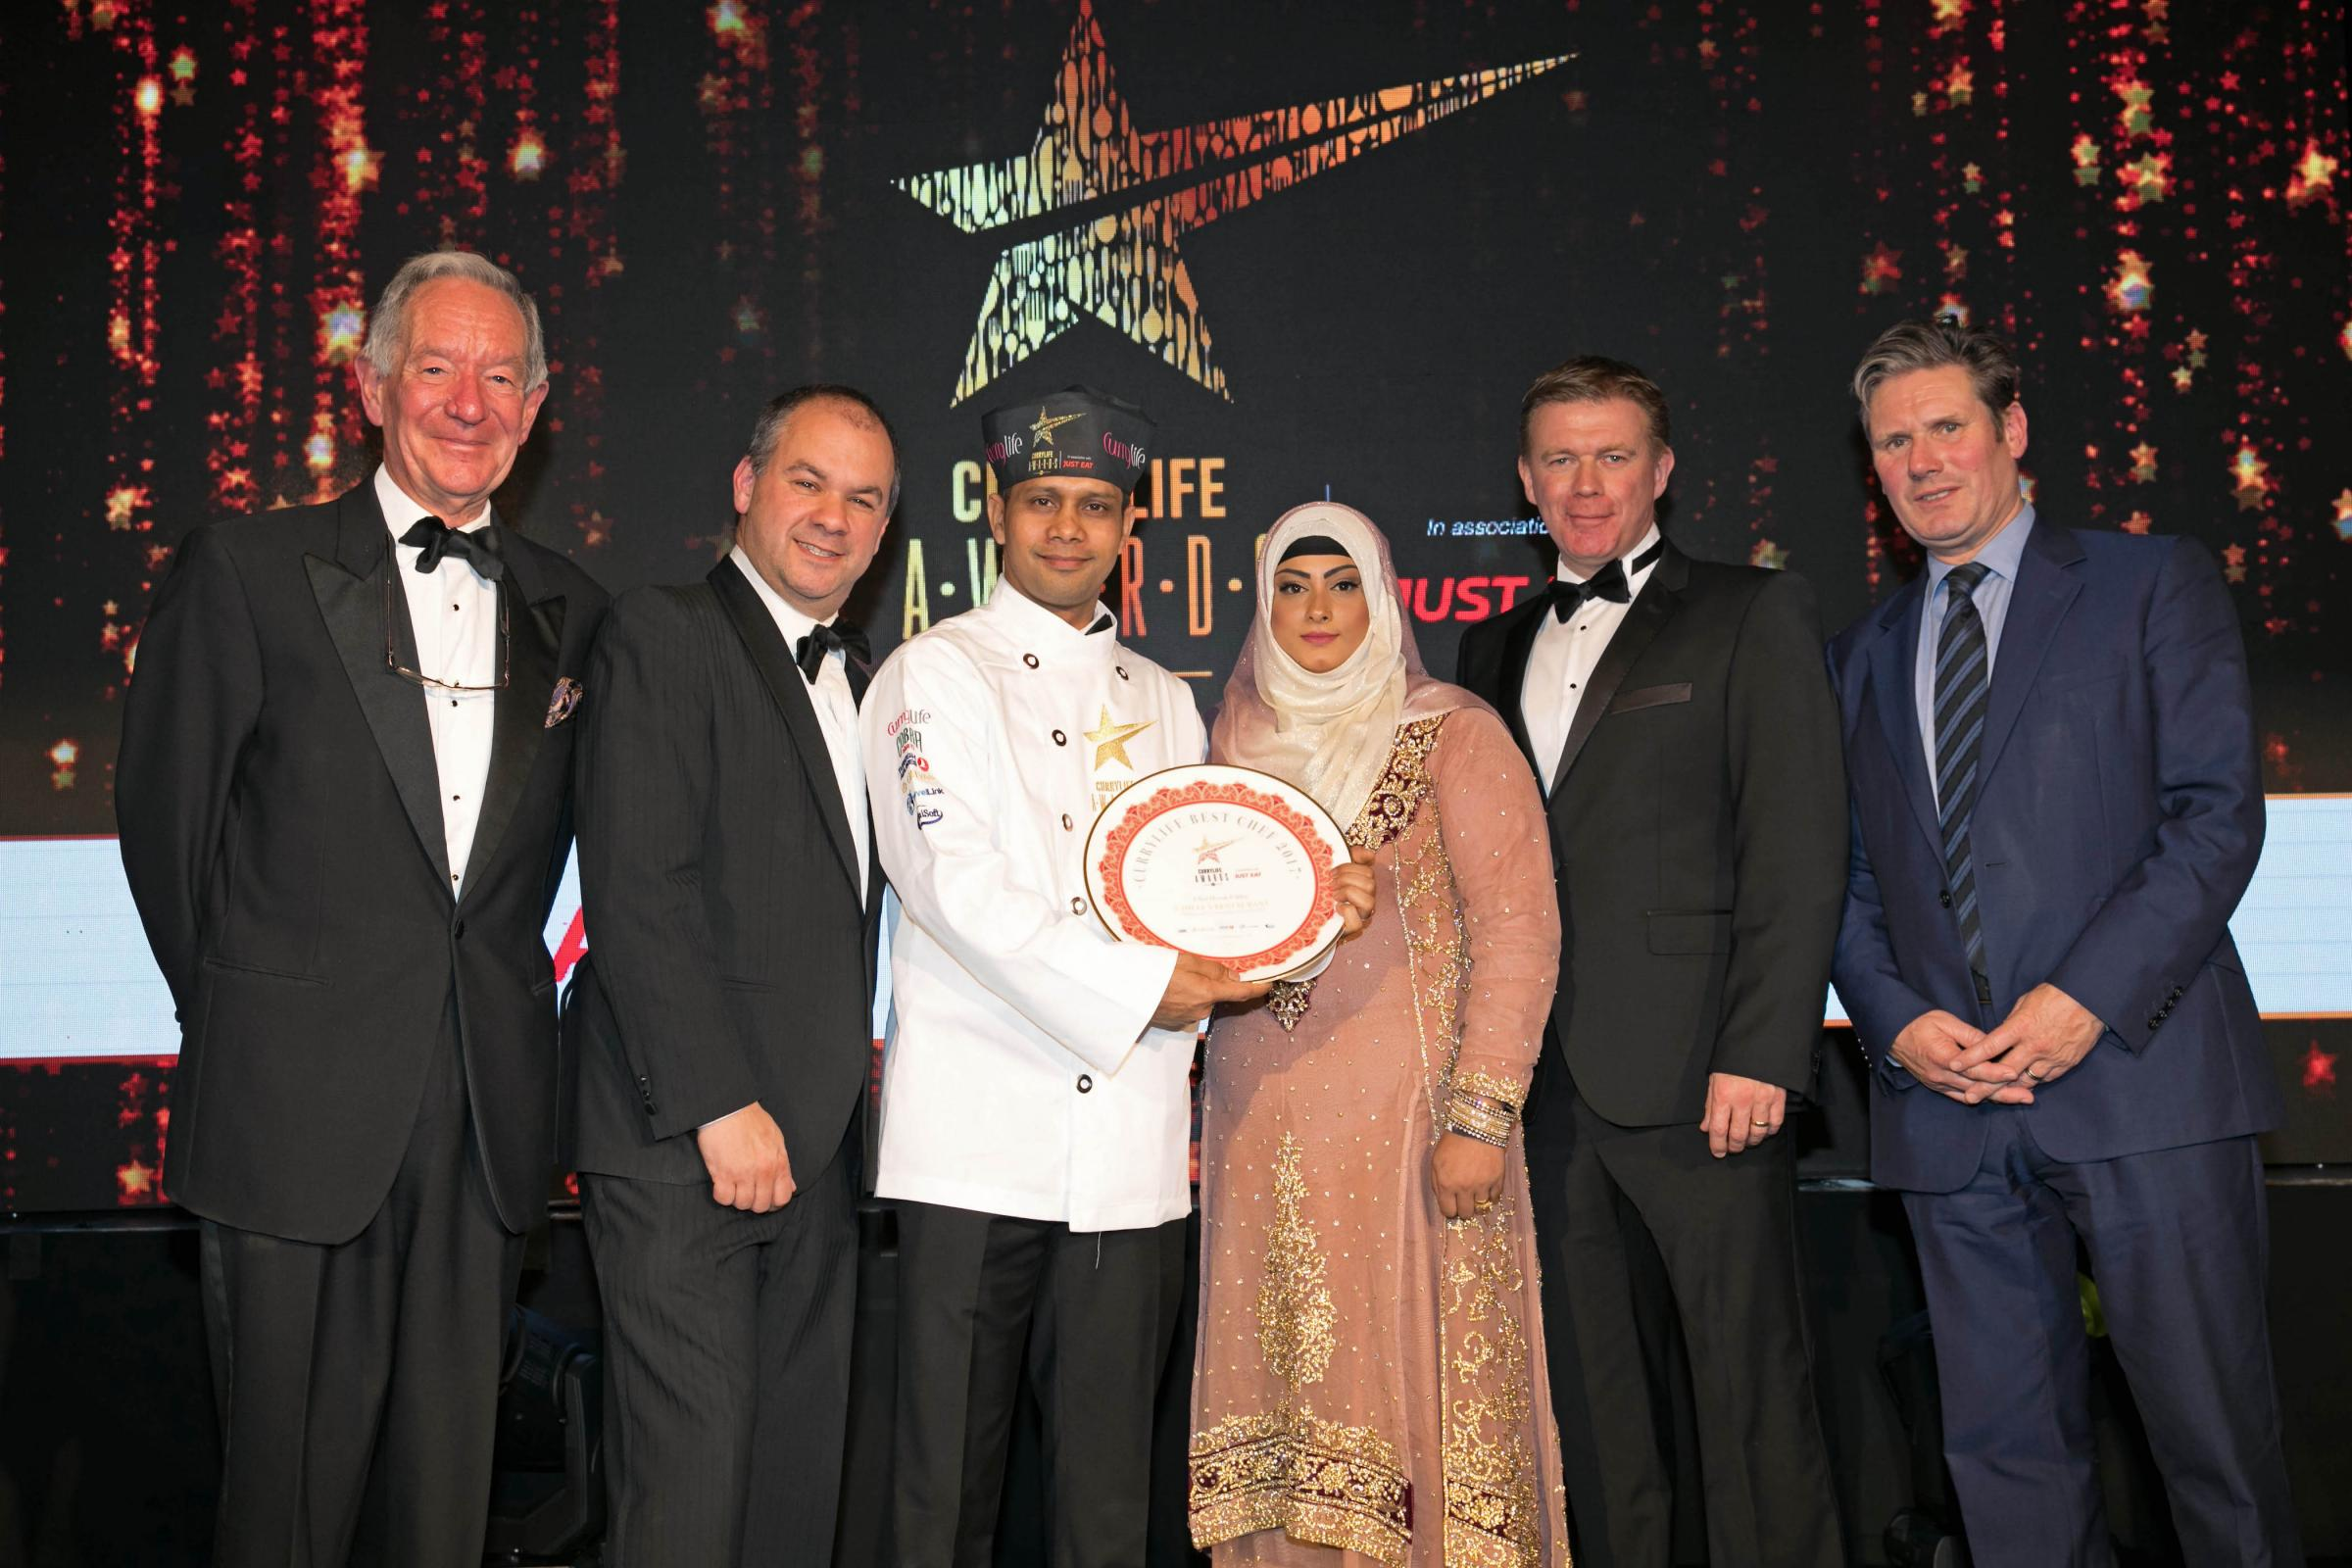 Curry Life Awards 2017, Lancaster Hotel - 22Oct17. (l-r) Michael Buerk, Journalist and Broadcaster, Mr Paul Scully MP, Wining Chef Herok Uddin and Manager Panna Uddin from Chilli's Restaurant, Mr Graham Corfield, UK Managing Director of Just Eat and Sir